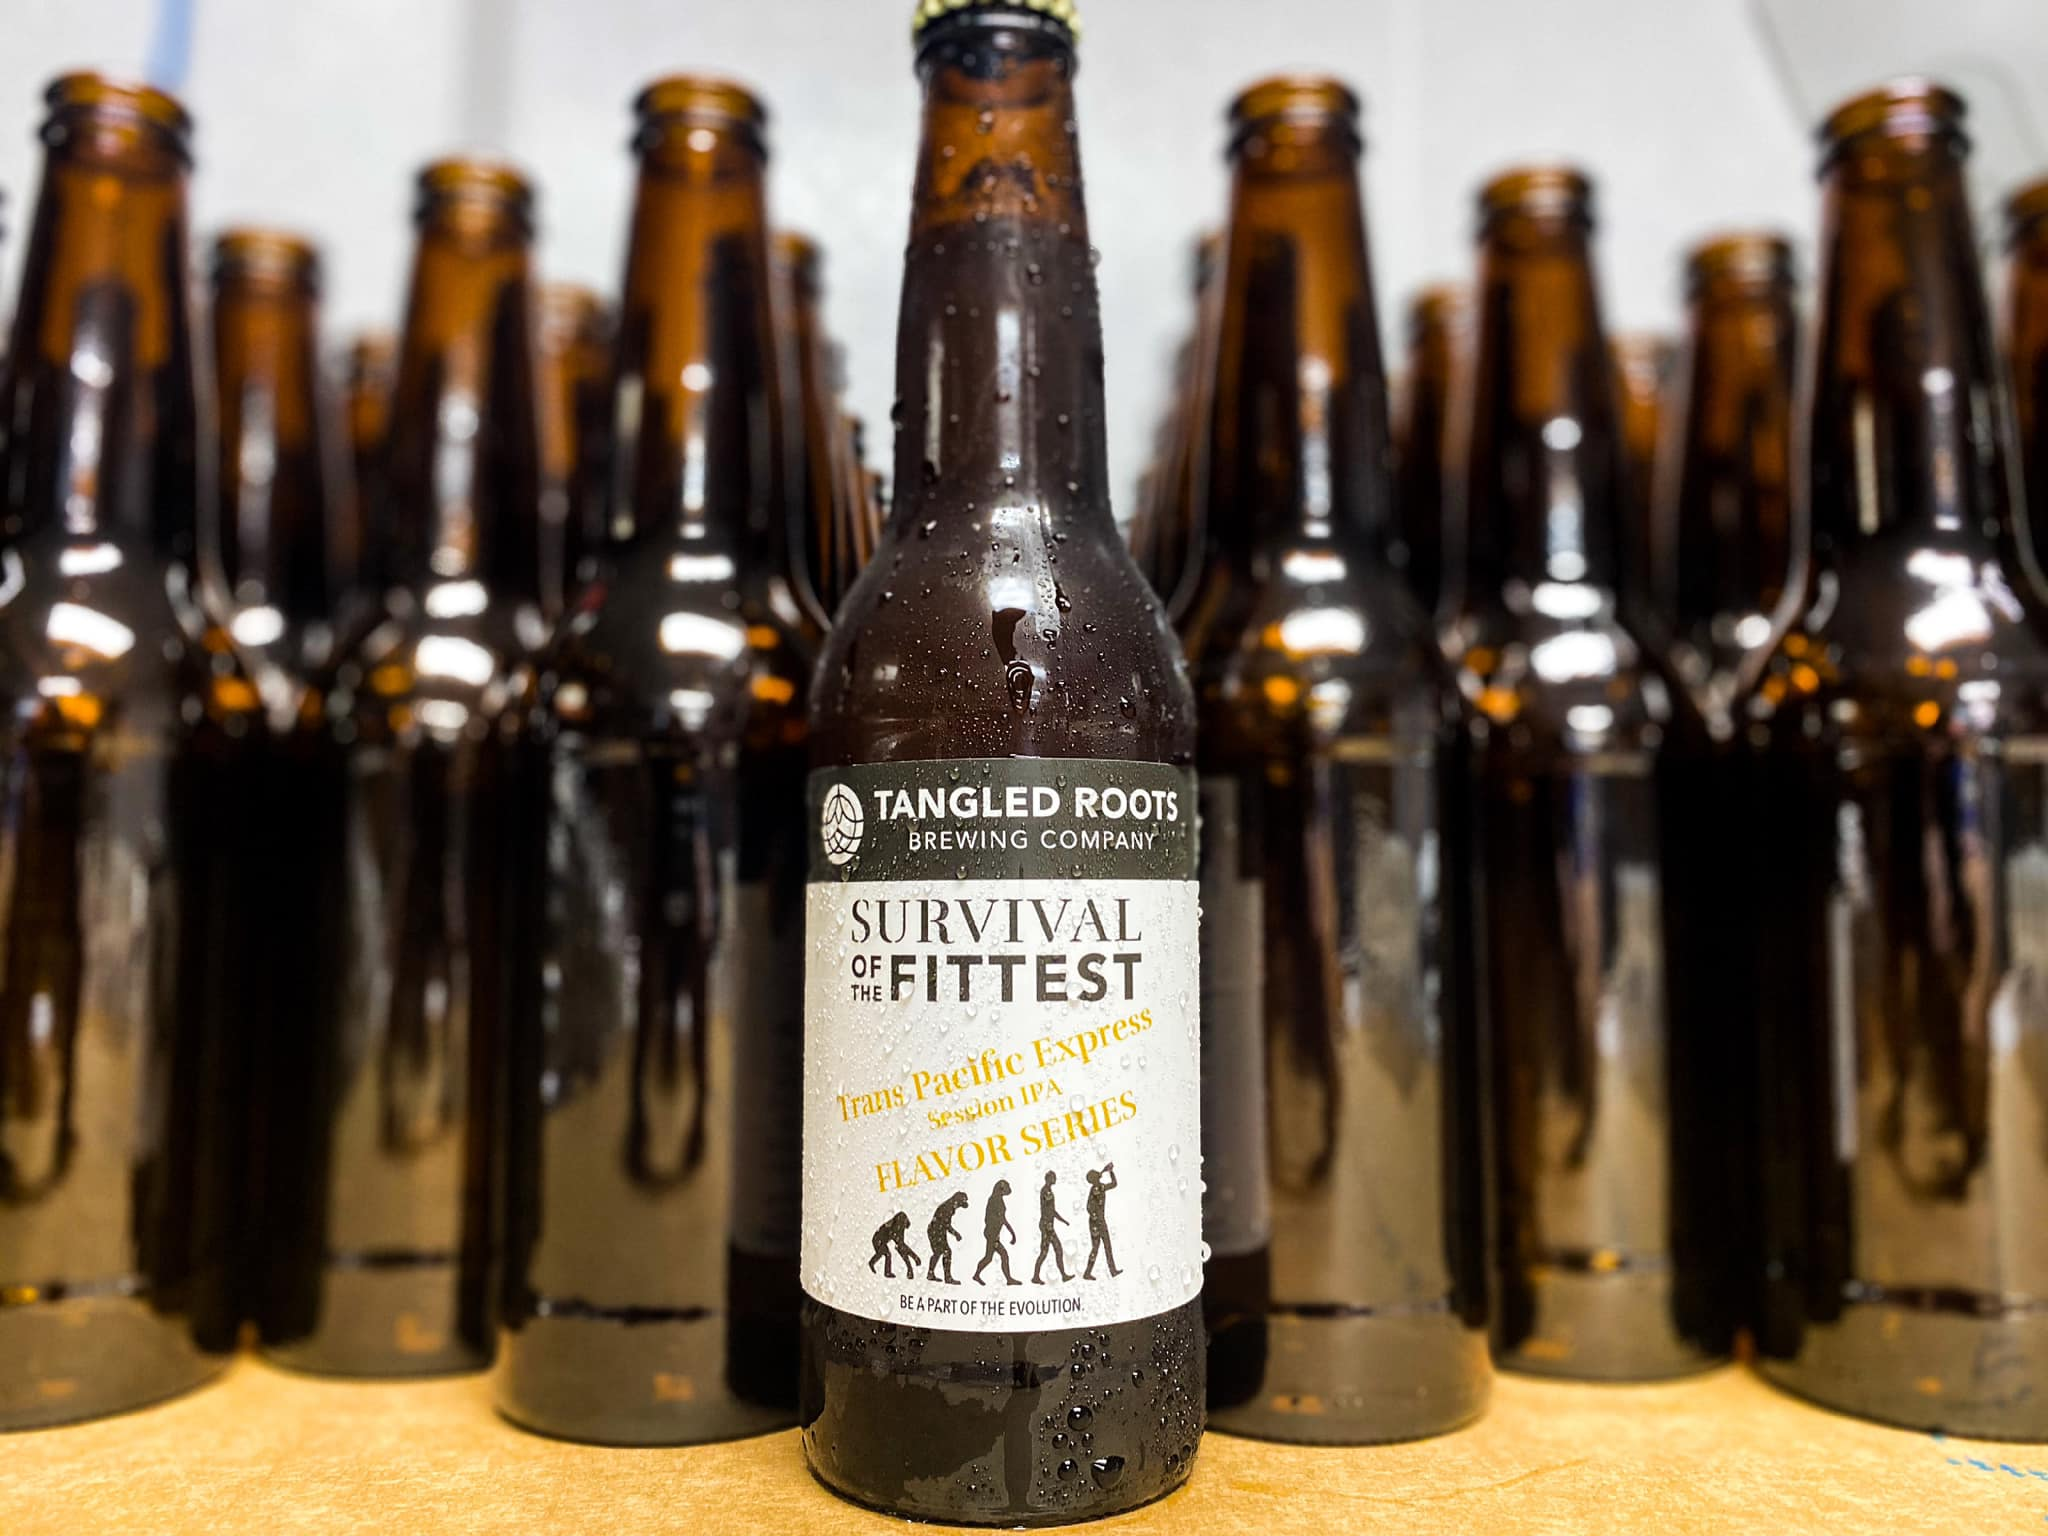 several bottles of Tangled Roots beer